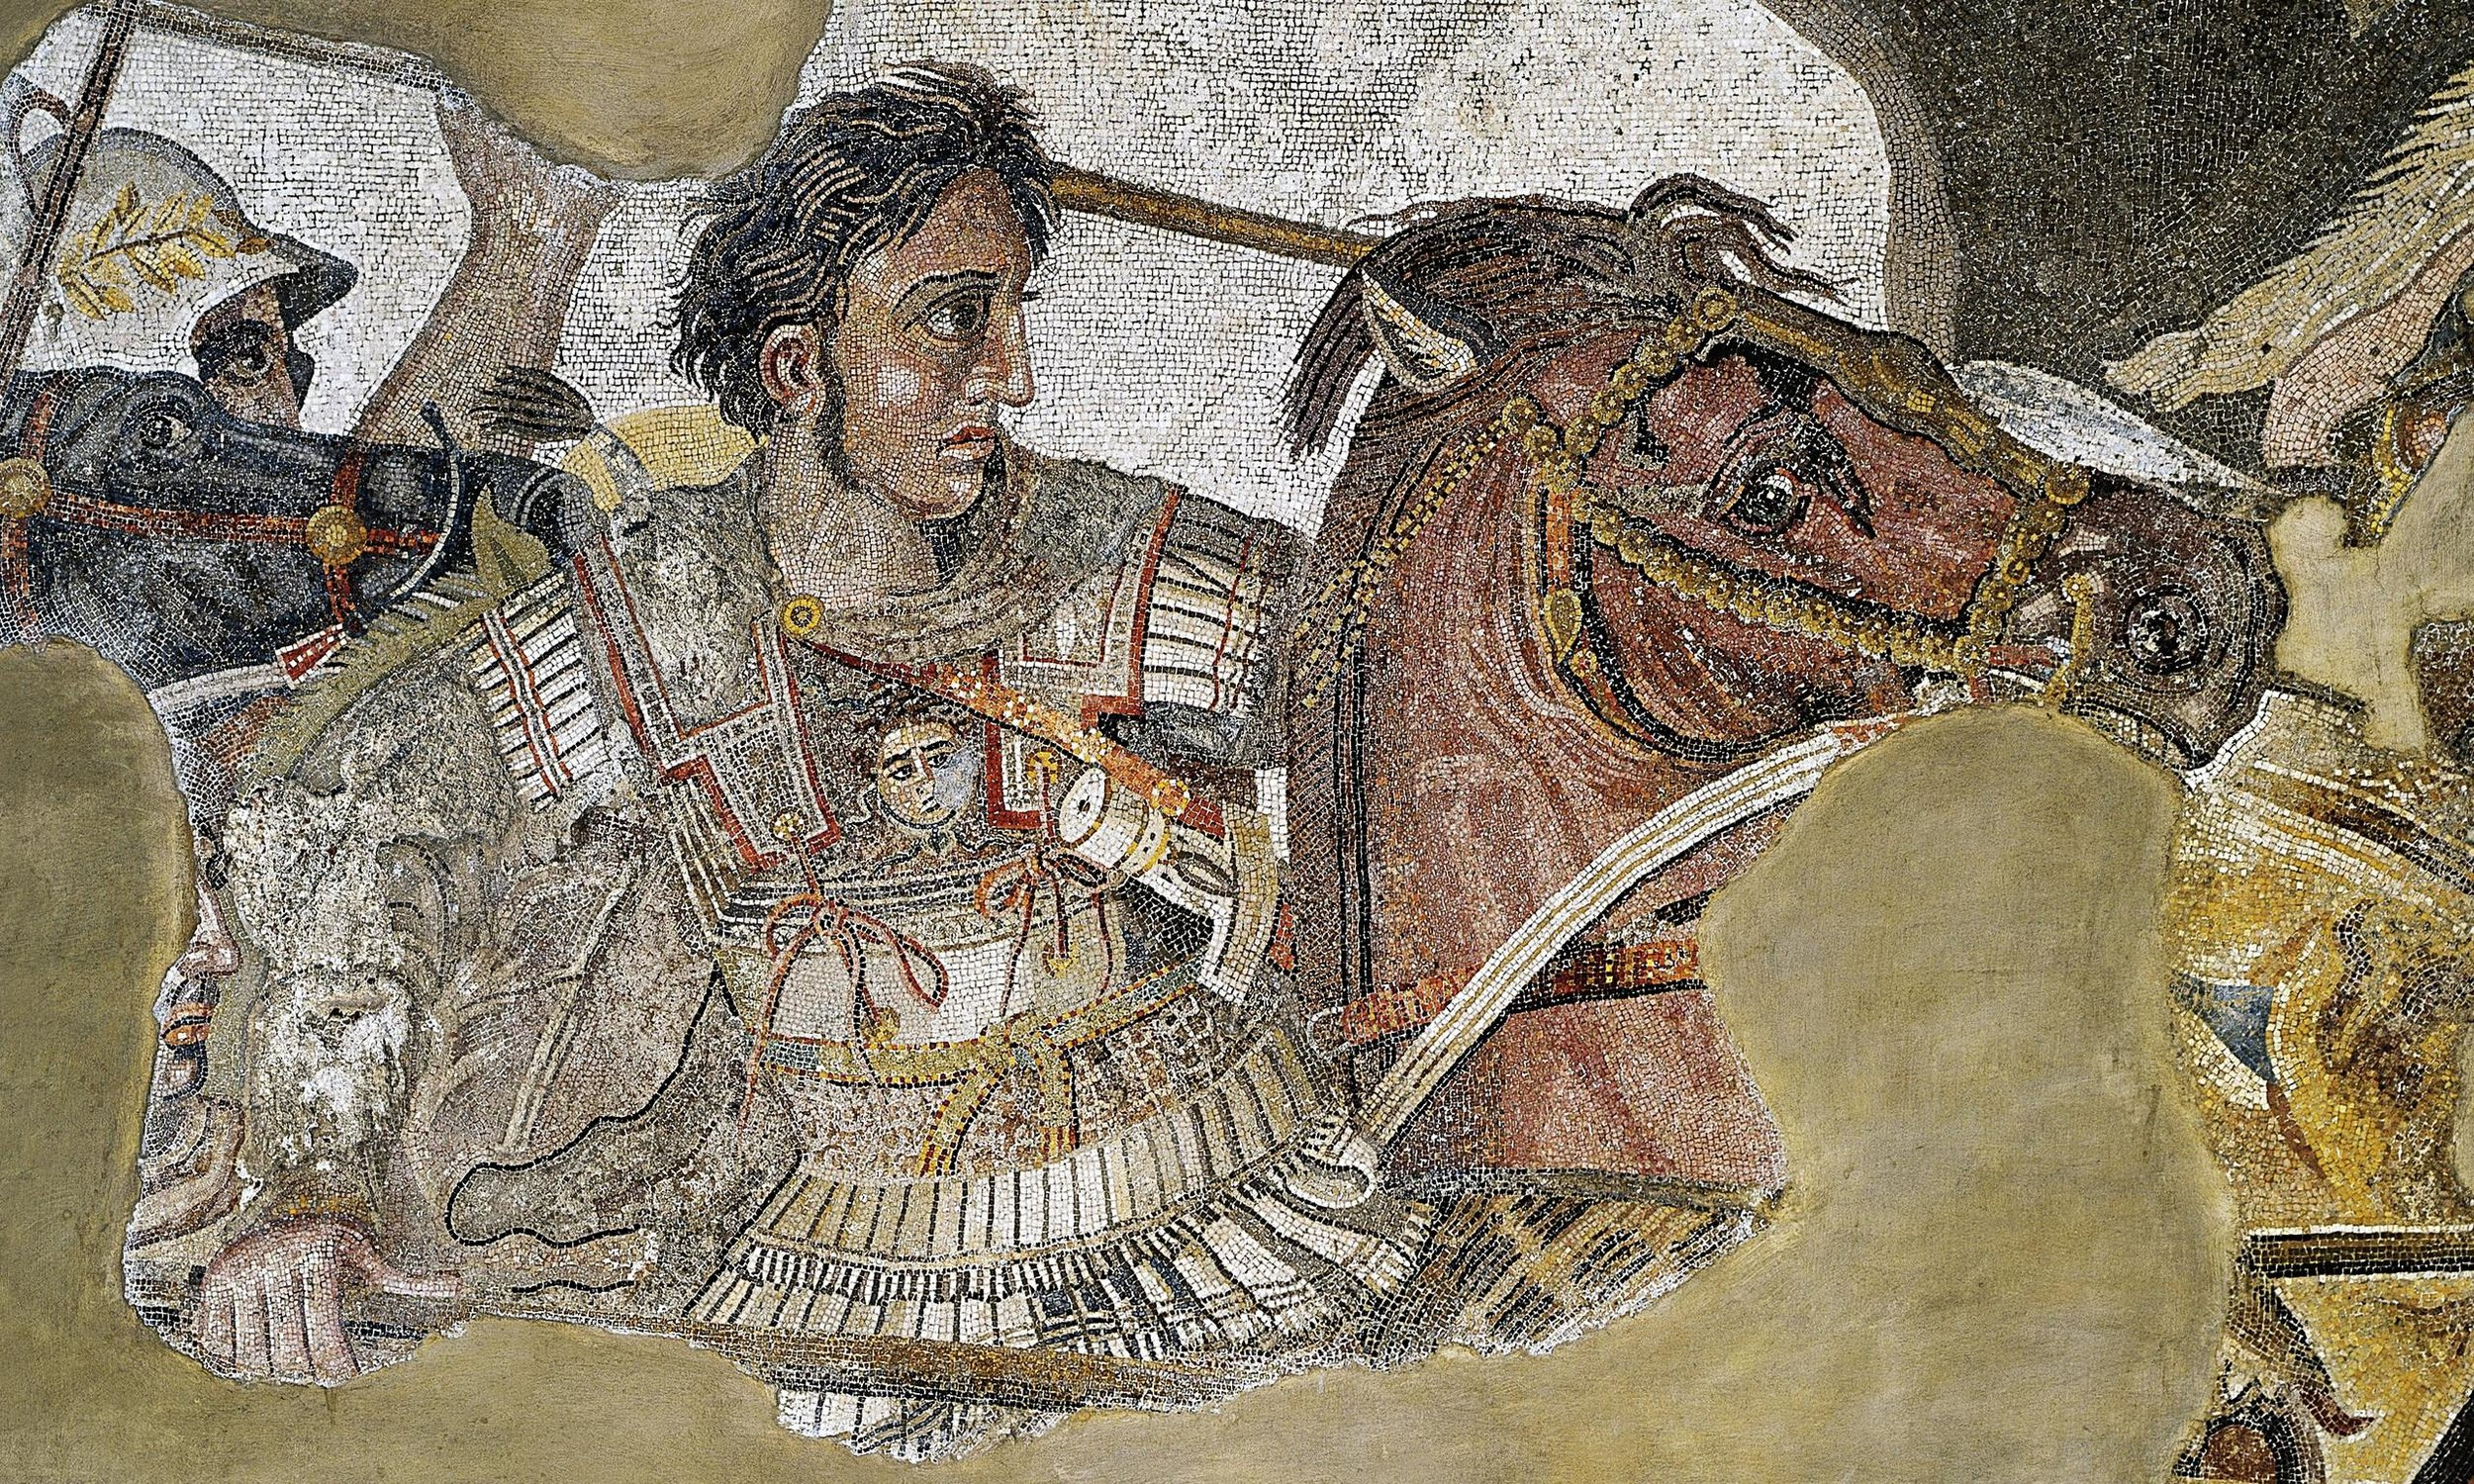 Let's get conquering! - Alexander the Great, from a mosaic at the National Archaeological Museum Naples. Accessed on Wikipedia